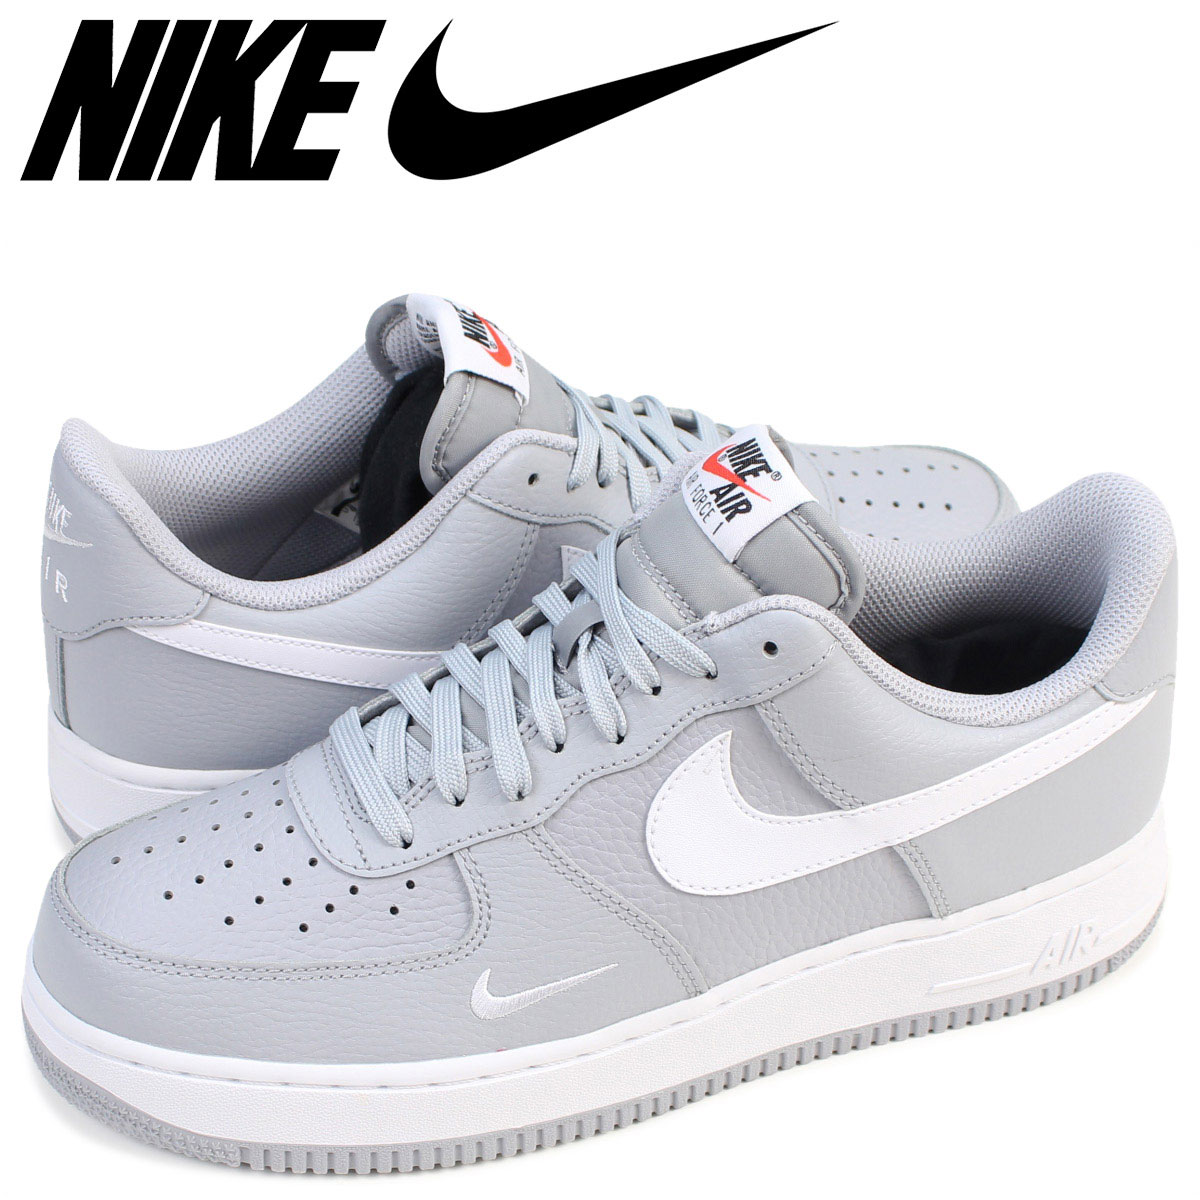 watch 4730e ec53b Sugar Online Shop   SOLD OUT  Nike NIKE air force 1 sneakers AIR FORCE 1 LOW  07 low 820,266-018 men s shoes gray  the 6 15 additional arrival    Rakuten  ...